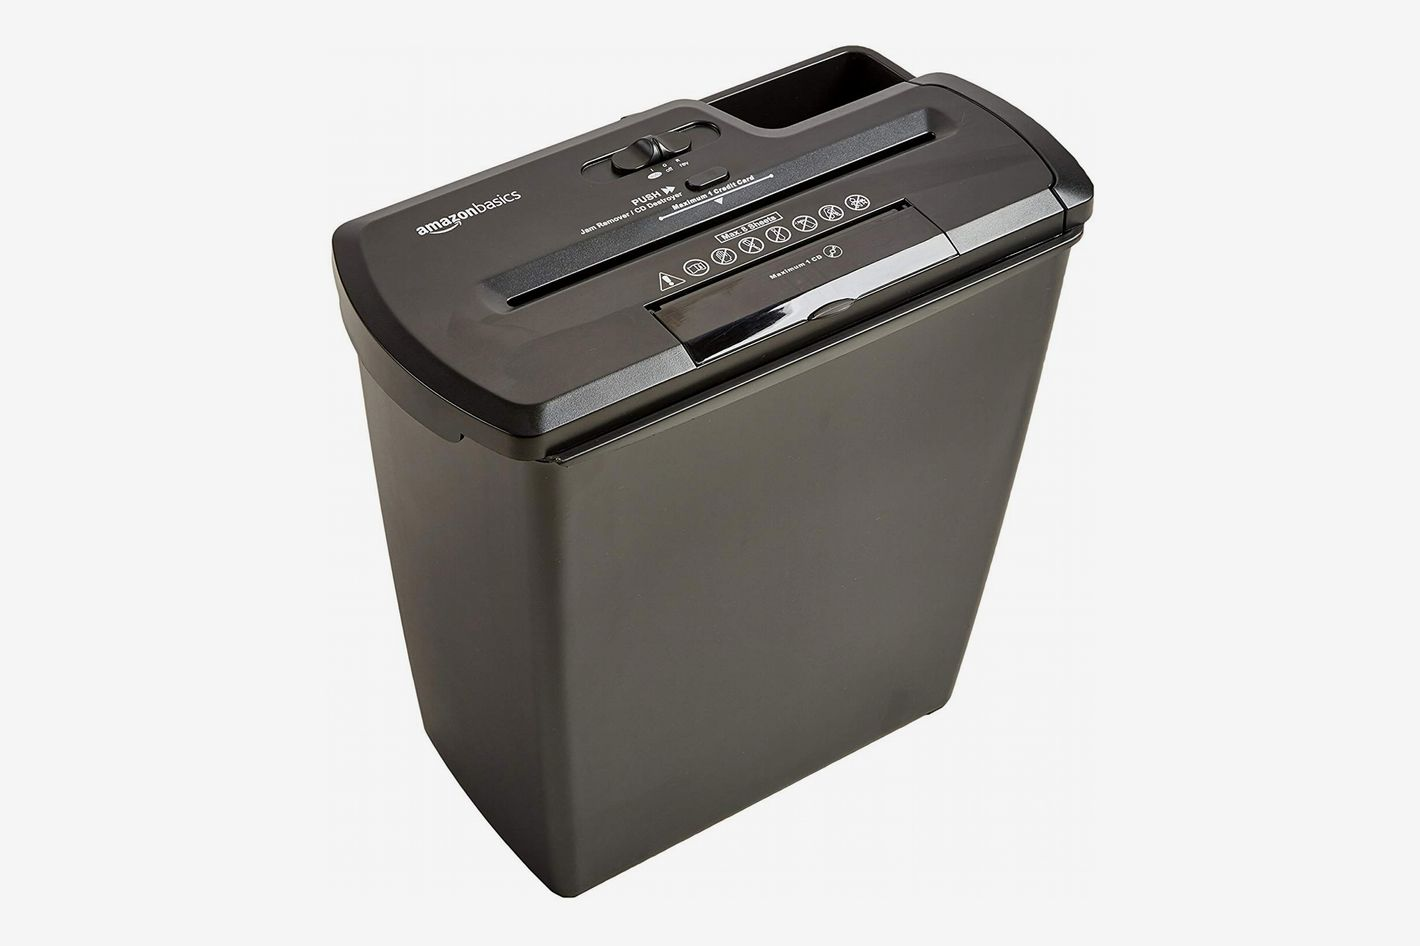 d4aed3c7a21f 9 Best Paper Shredders on Amazon 2019